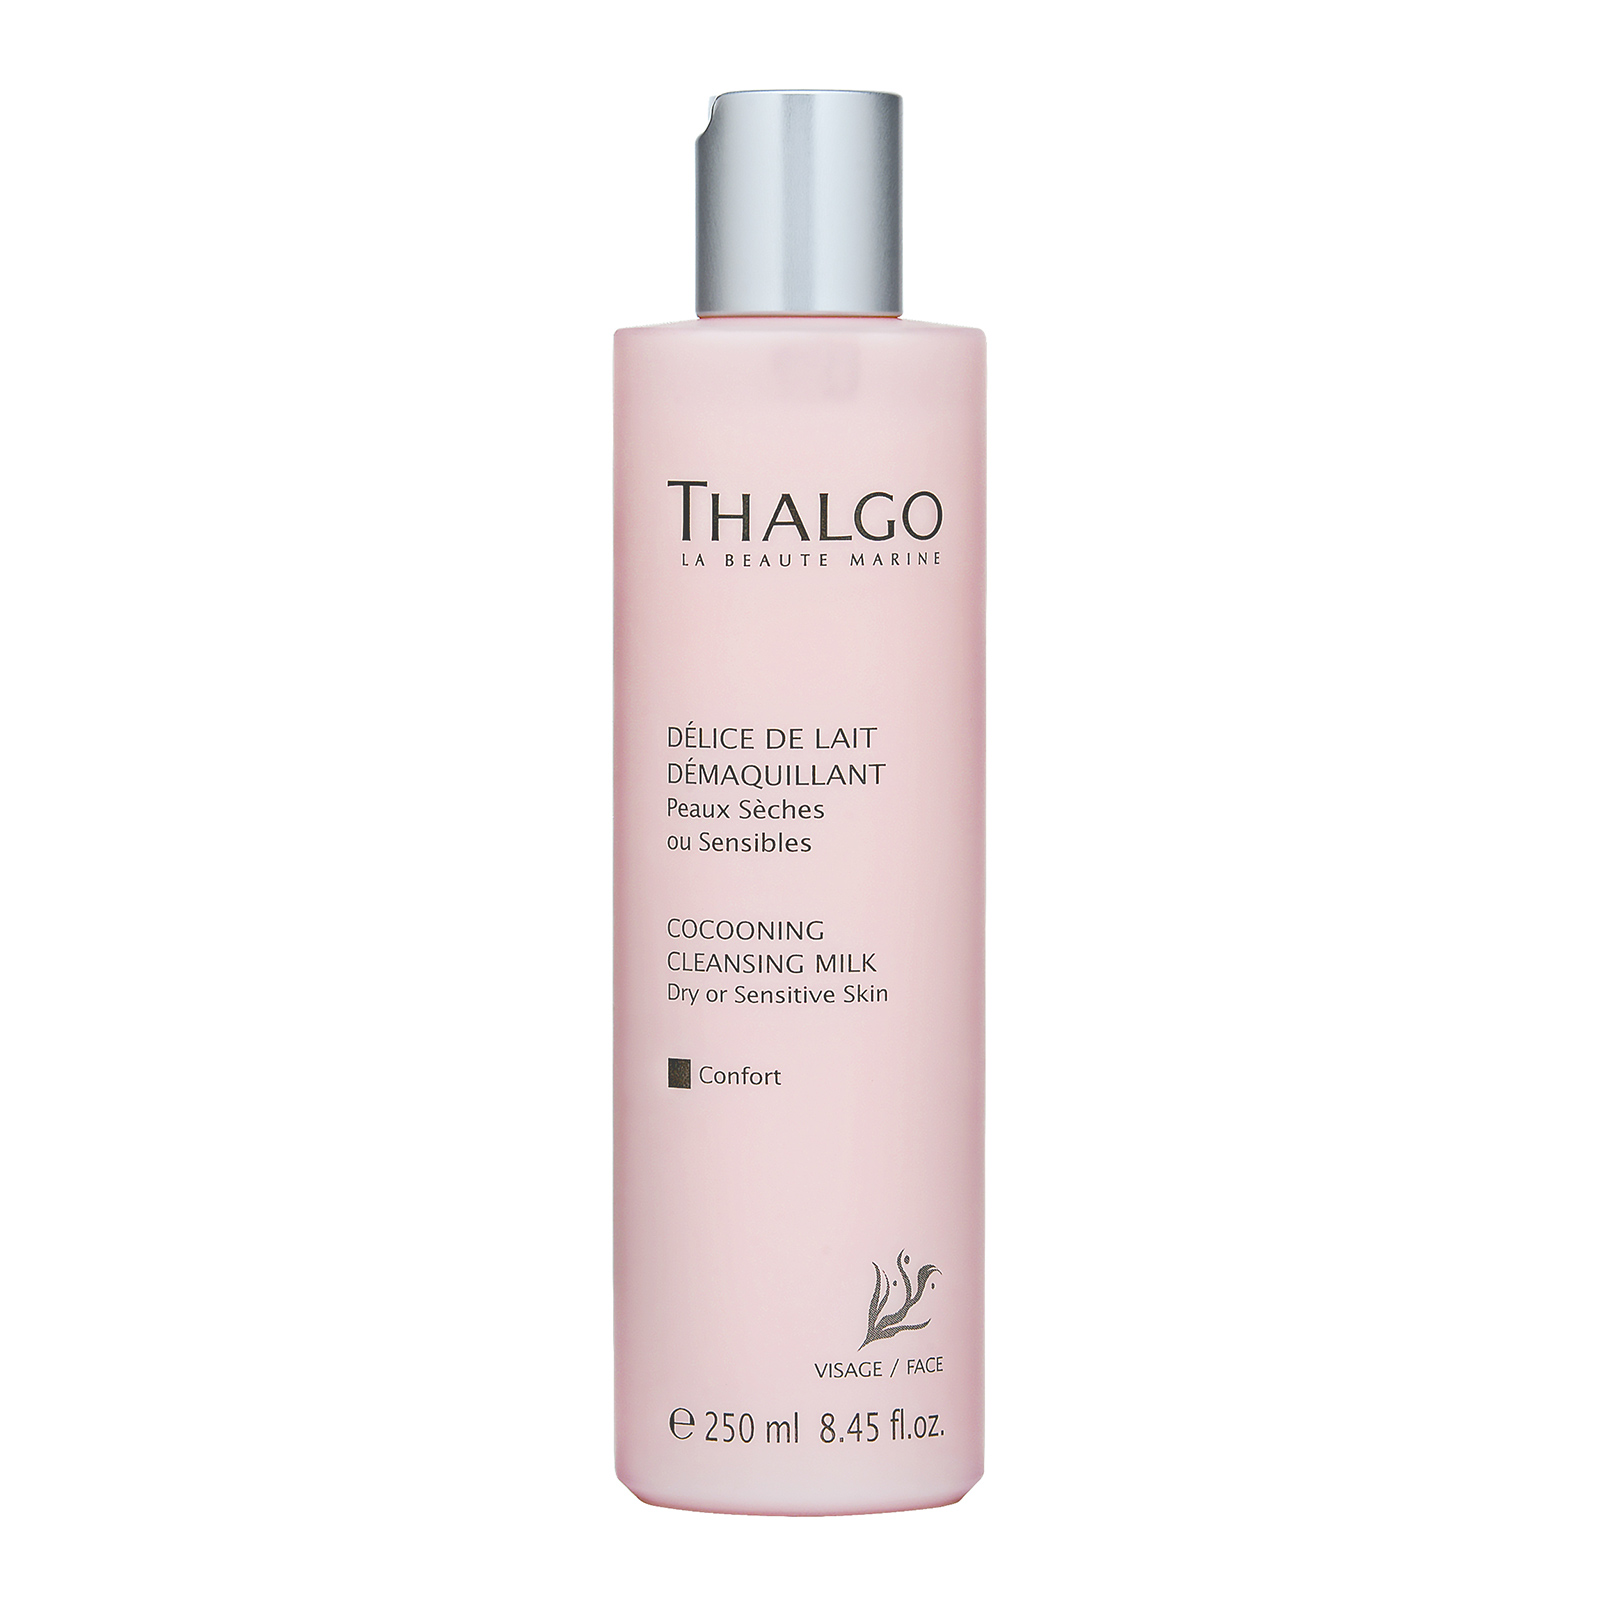 THALGO  Cocooning Cleansing Milk  (Dry or Sensitive Skin) 8.45oz, 250ml